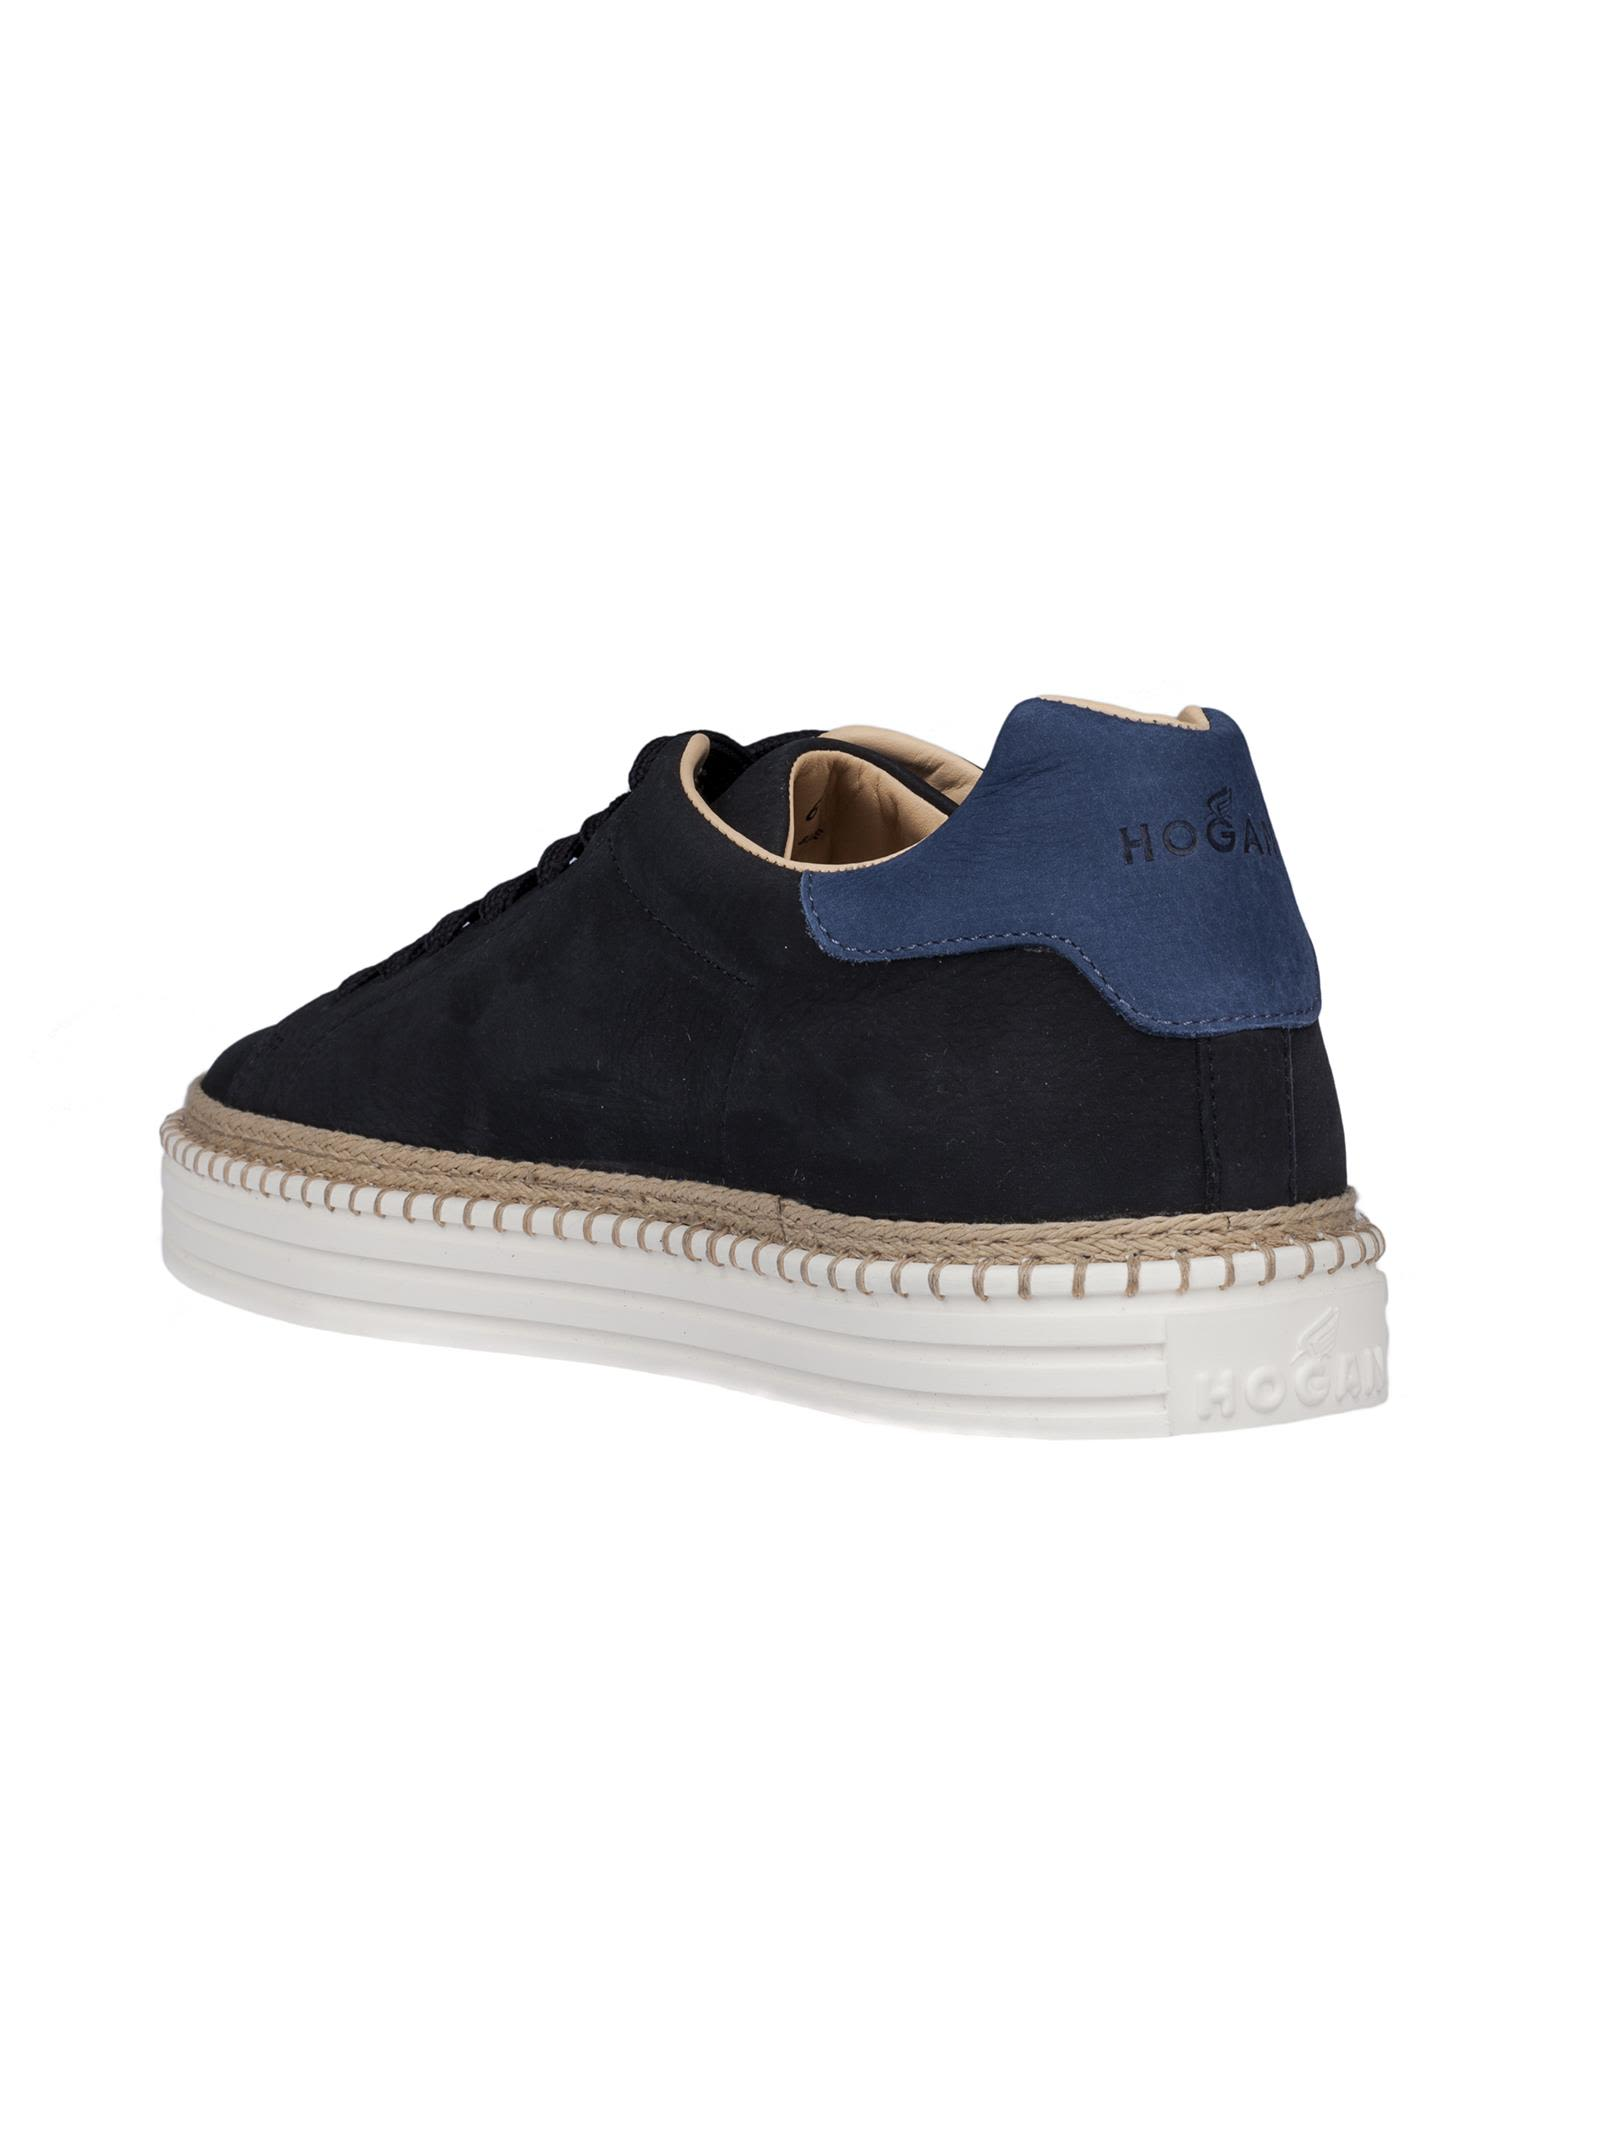 stitched sole sneakers - Blue Hogan